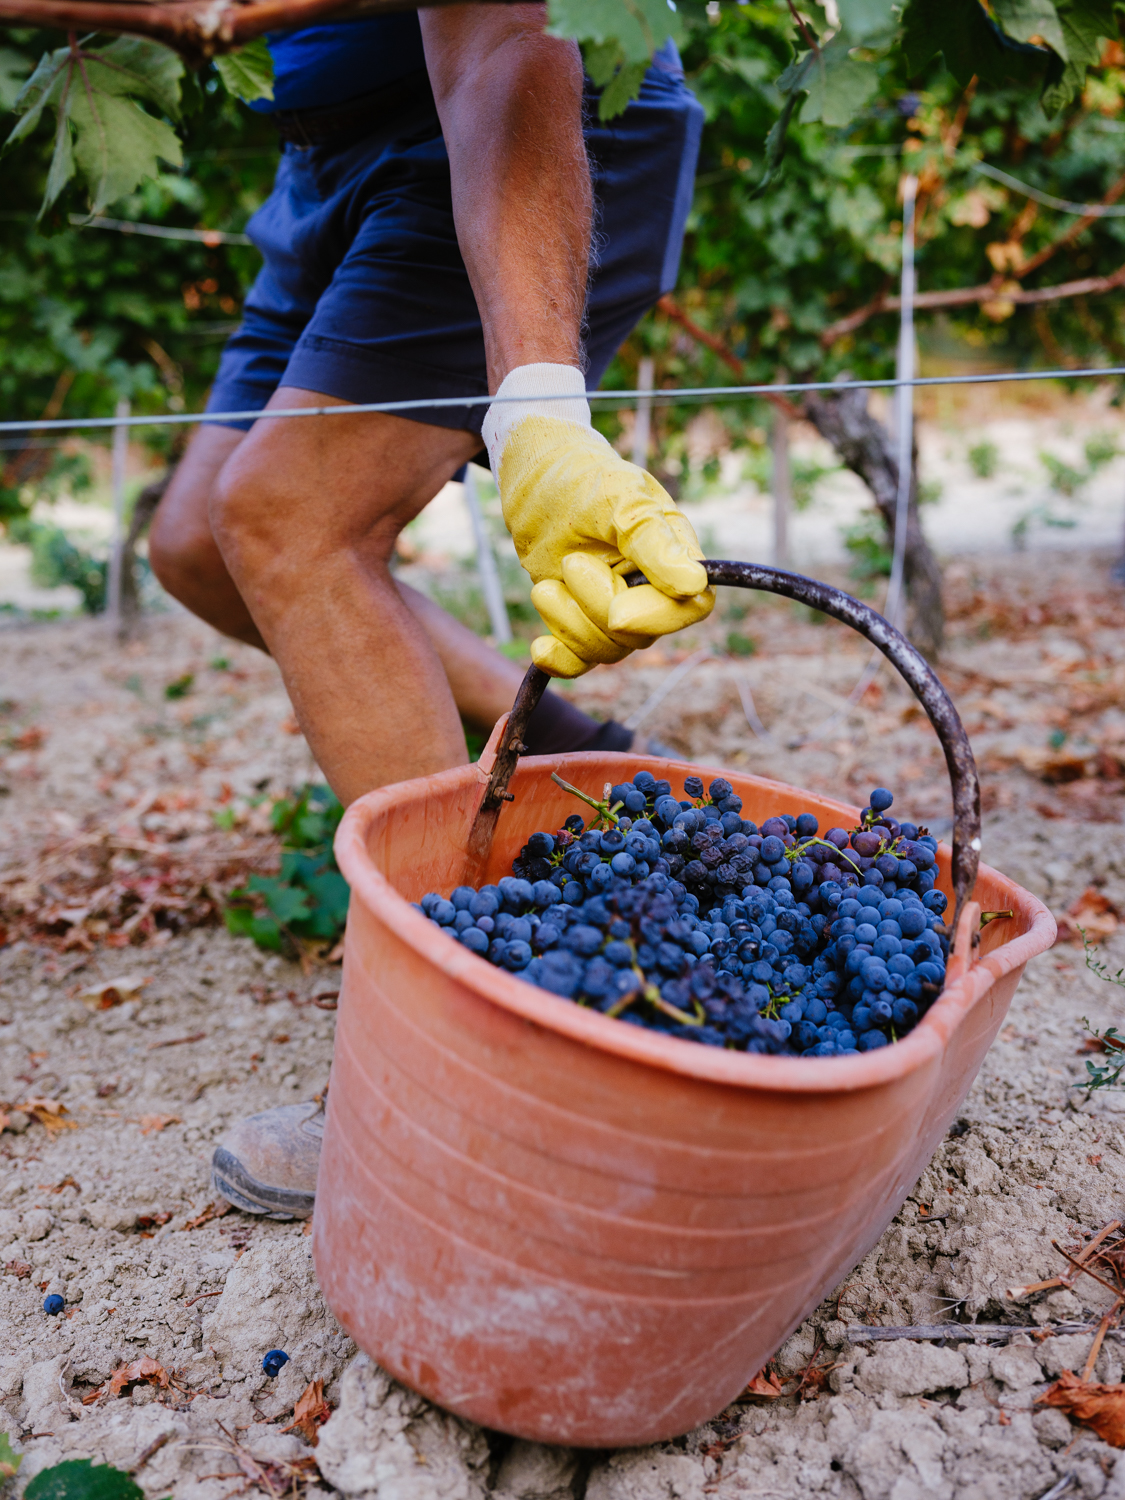 Buckets to carry the grapes to the tractor